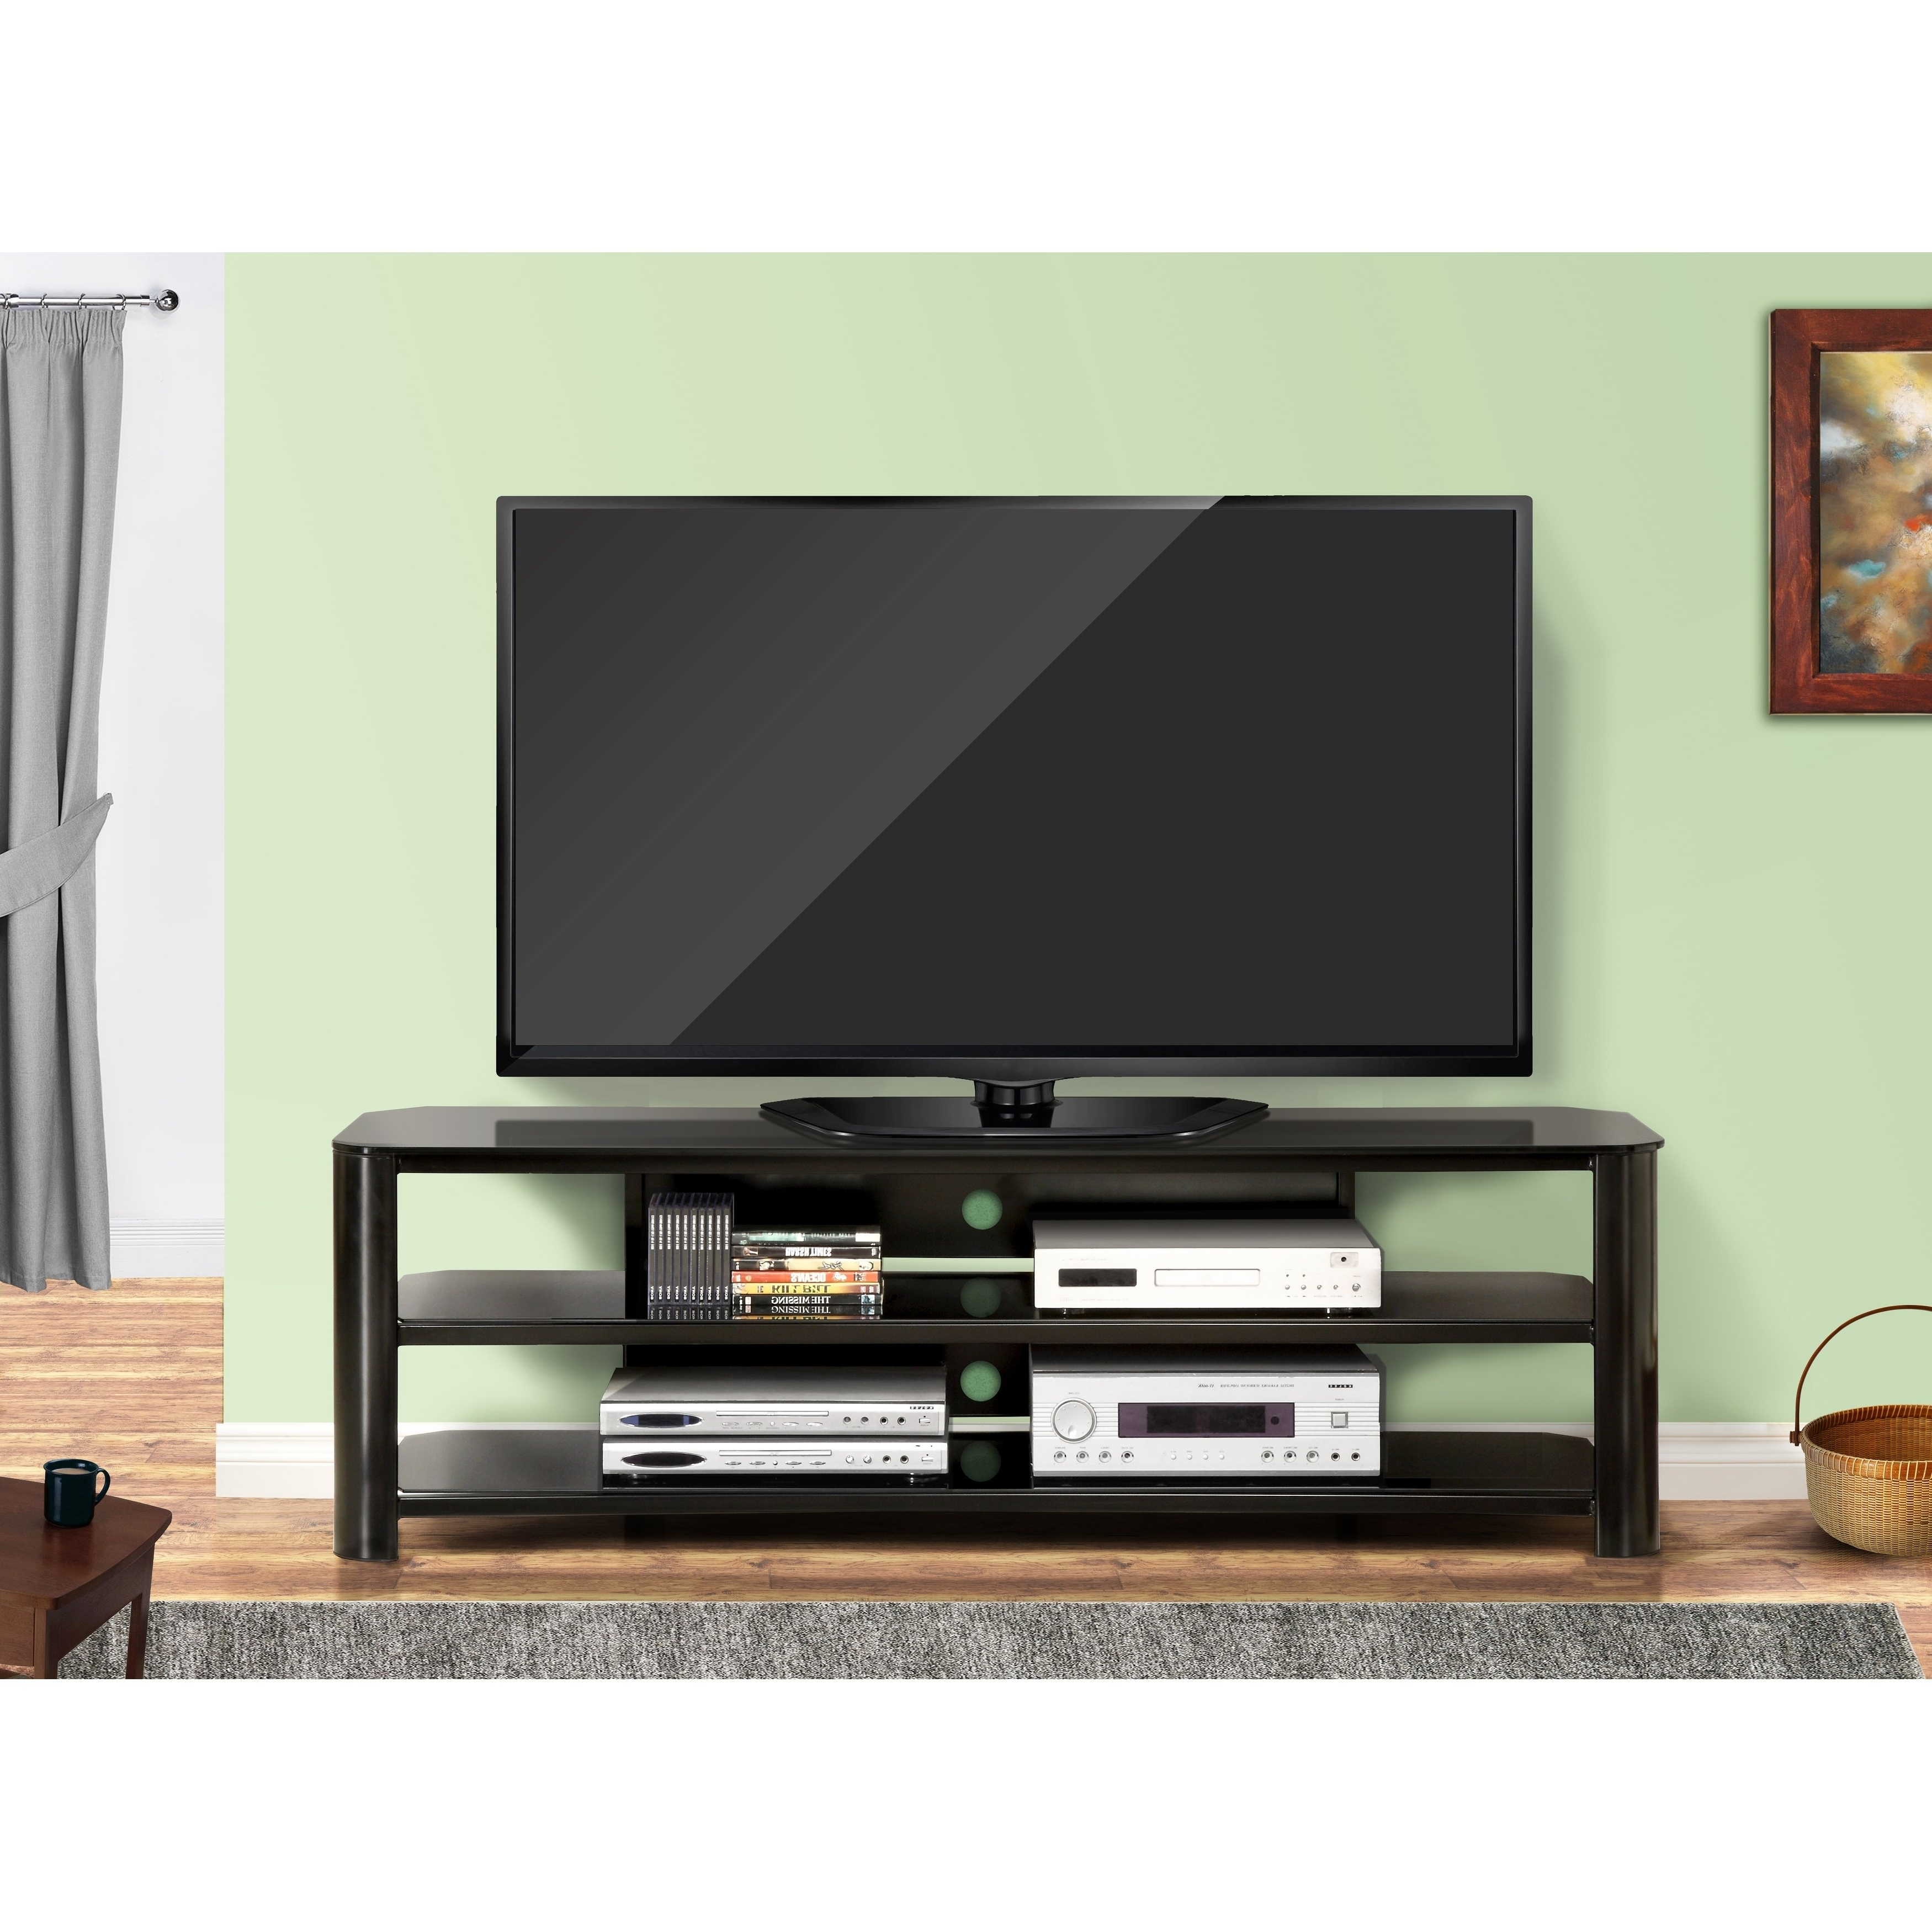 Shop Fold 'n' Snap Oxford Ez Black Innovex Tv Stand – Free Shipping Pertaining To Newest Oxford 60 Inch Tv Stands (Gallery 13 of 20)